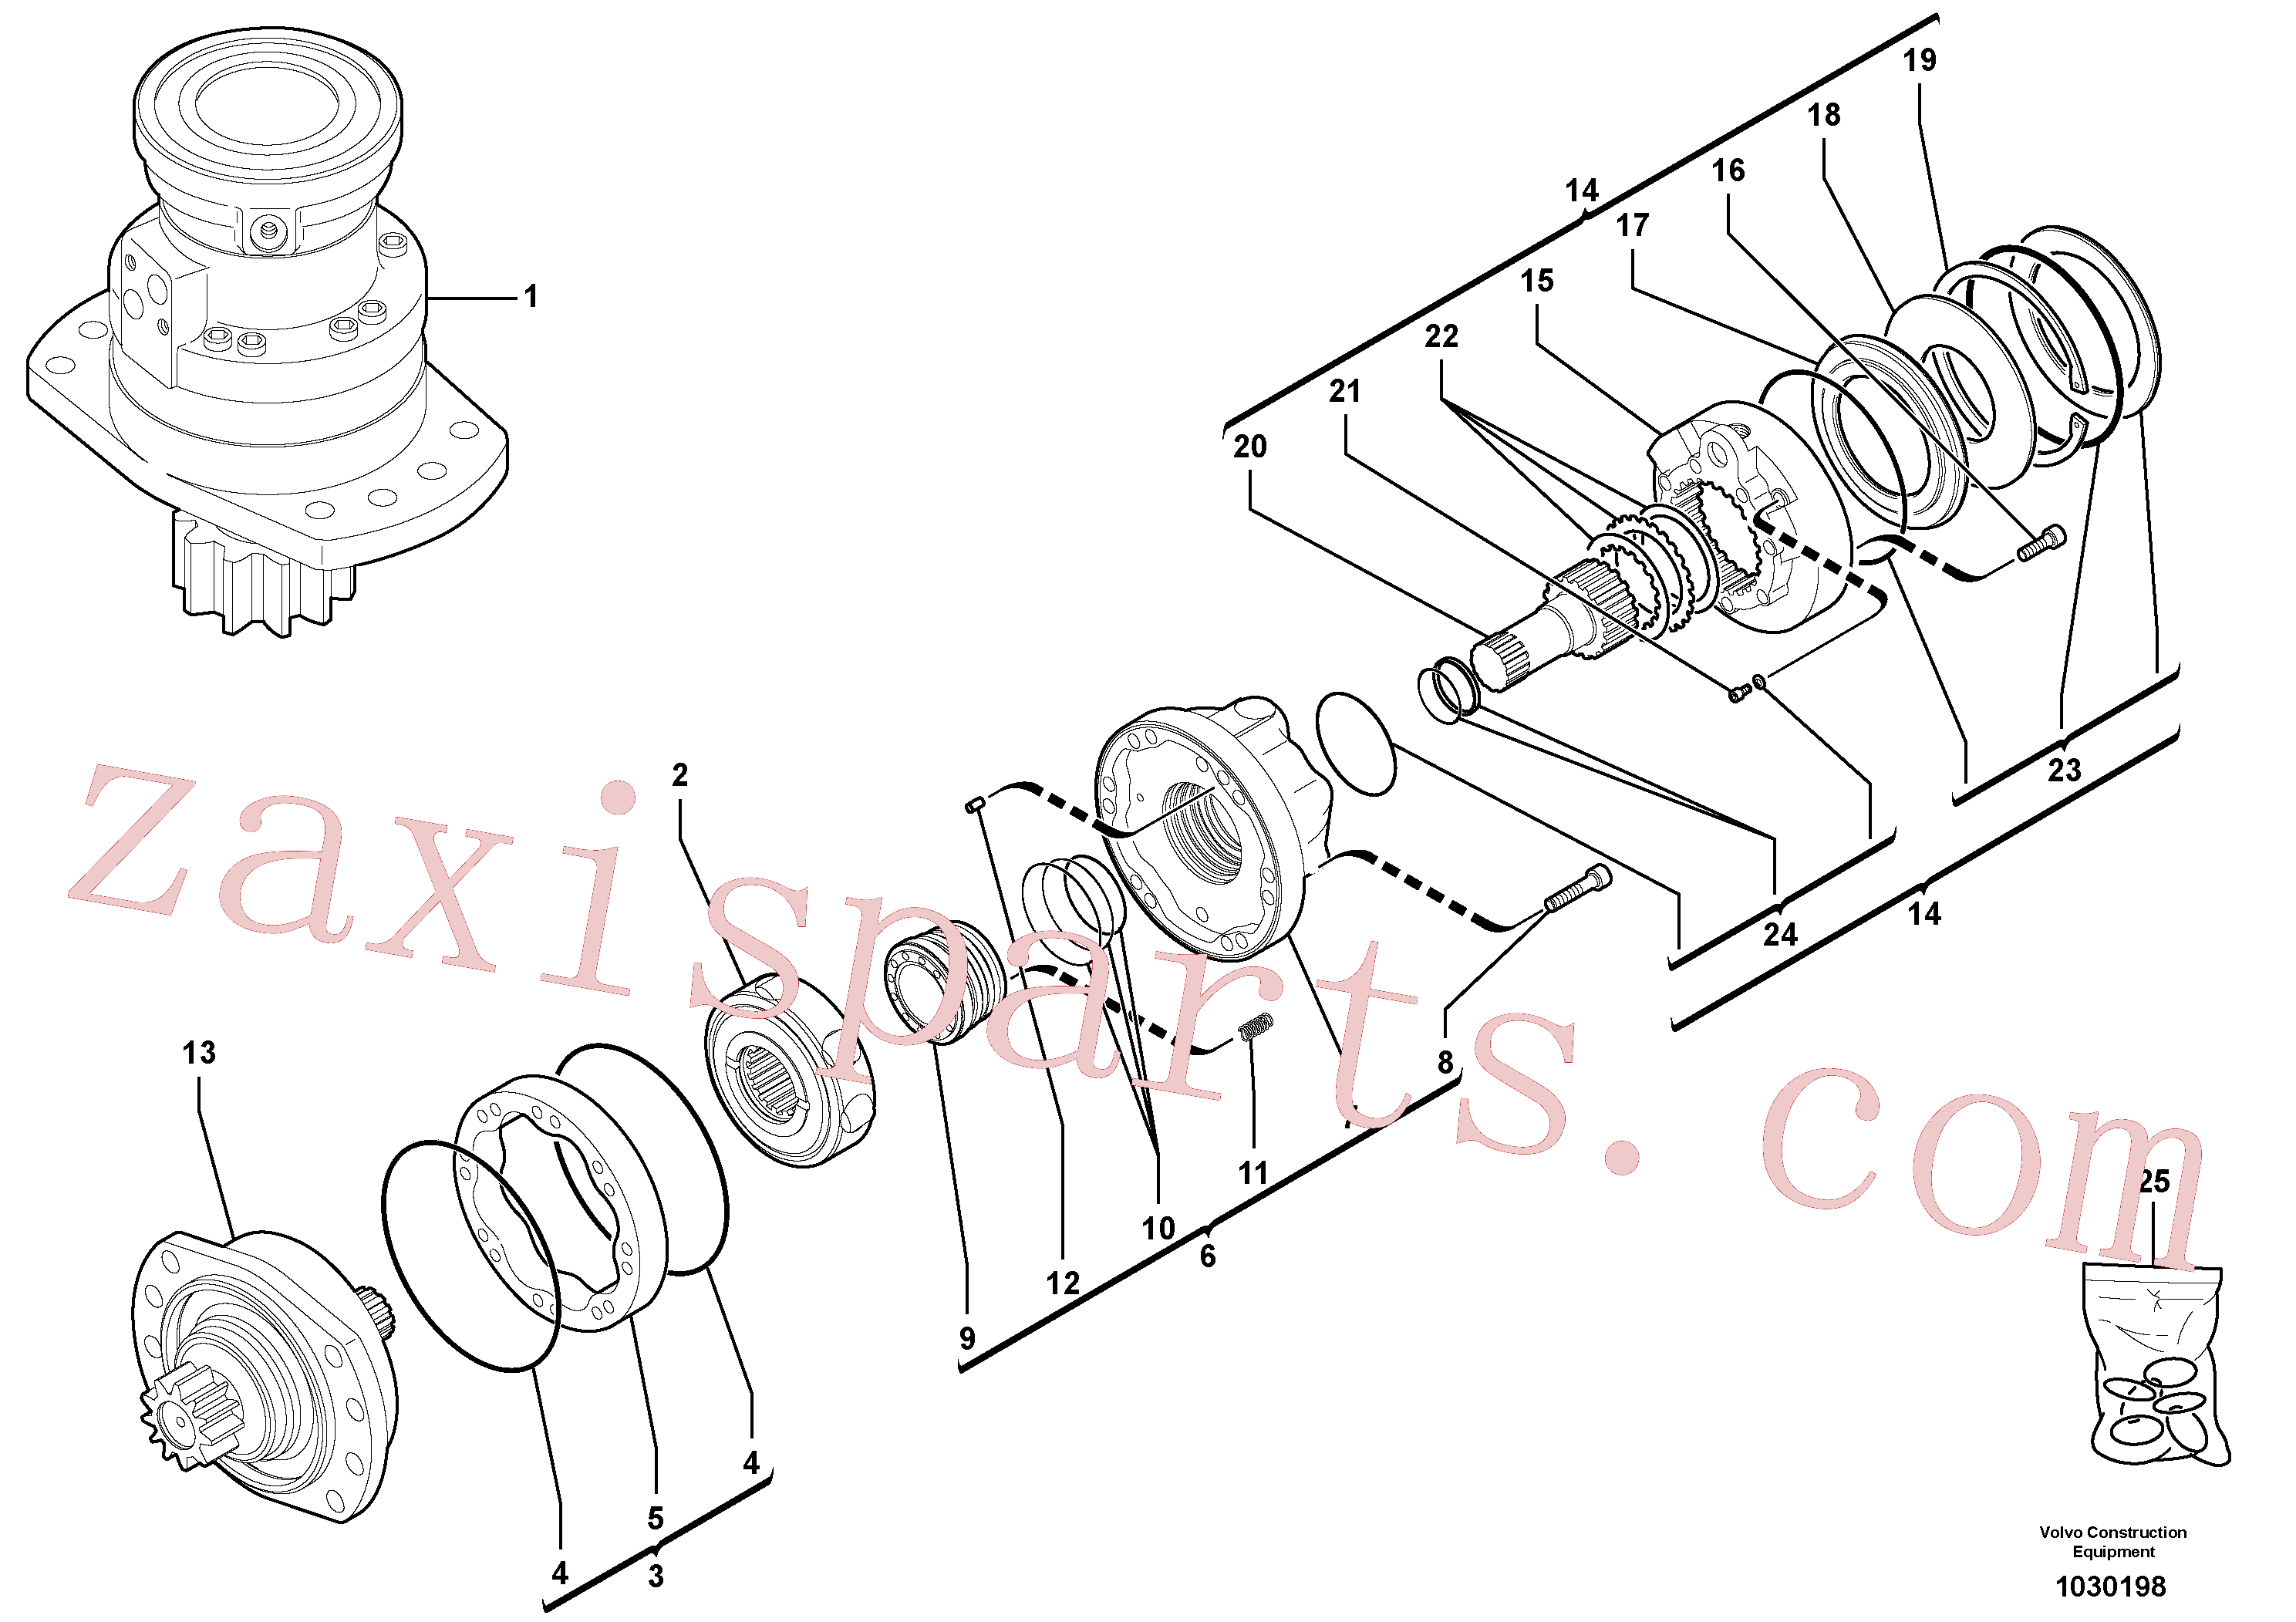 RM13281696 for Volvo Slewing gear motor(1030198 assembly)